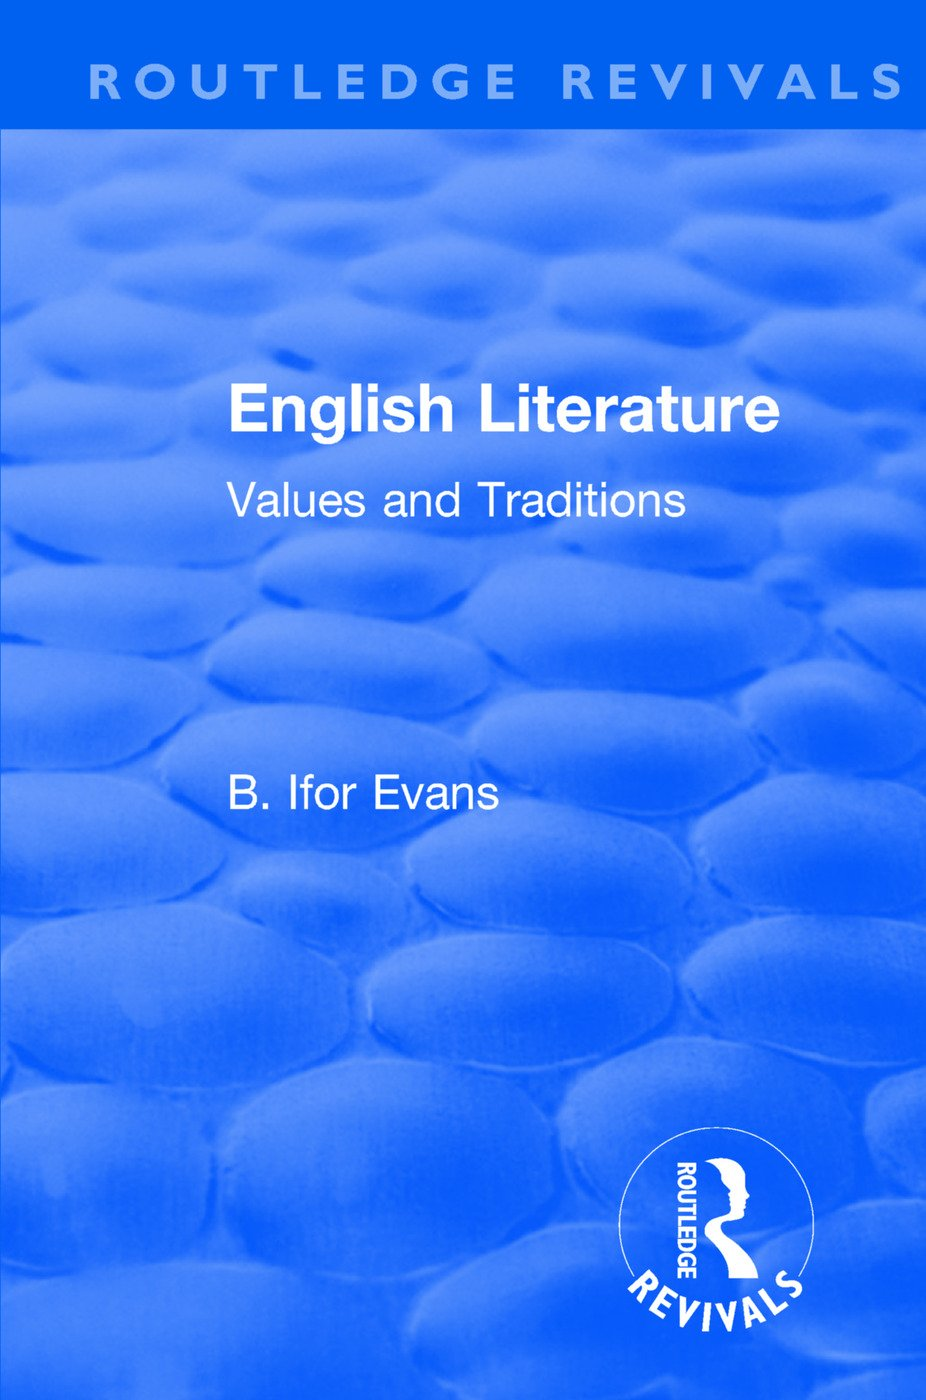 Routledge Revivals: English Literature (1962): Values and Traditions book cover